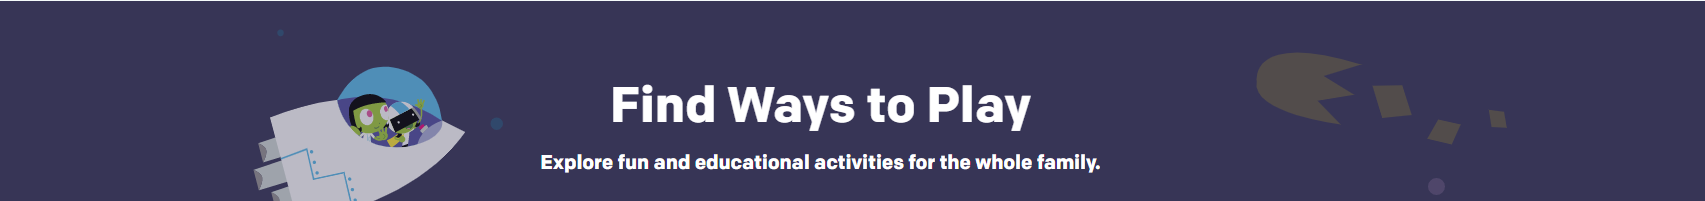 Find Ways to Play - PBS Activities